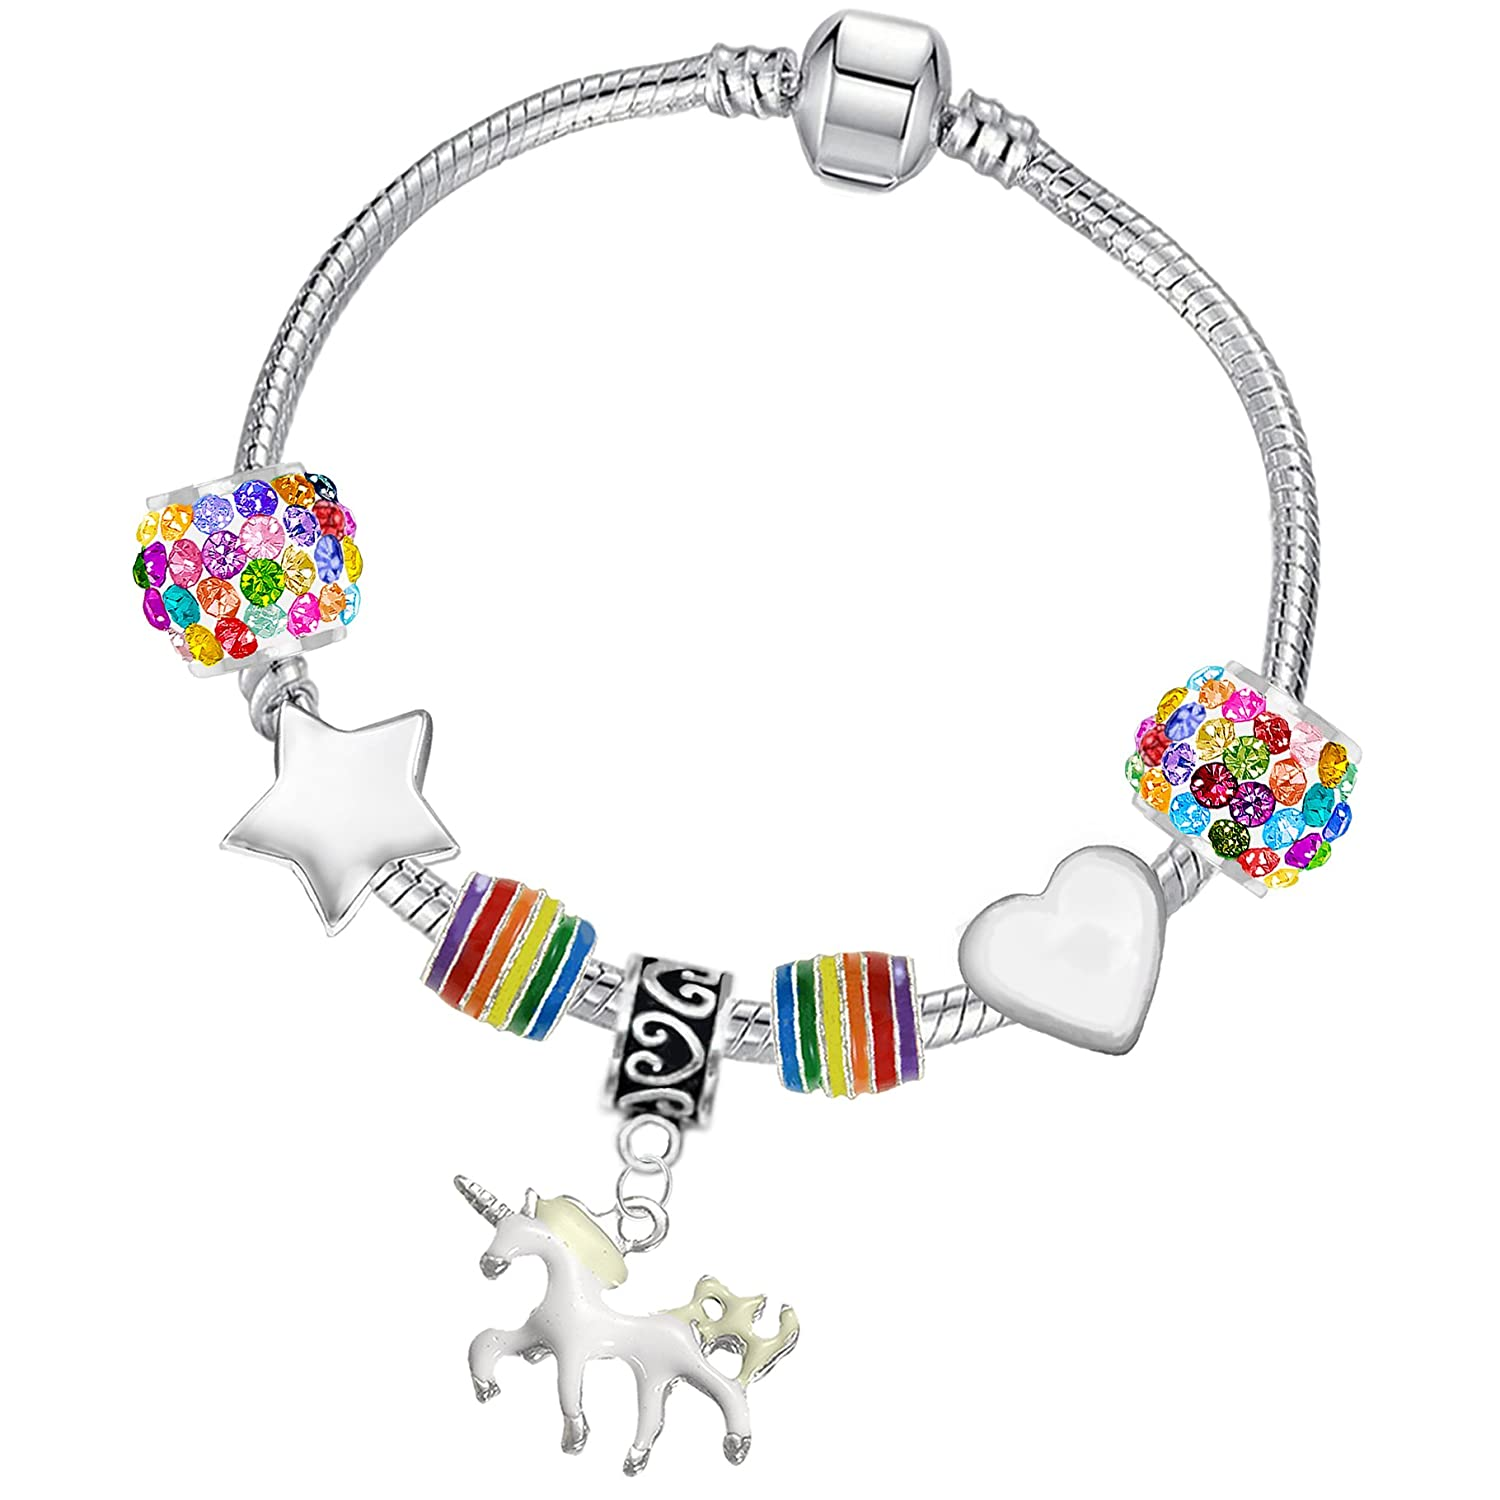 Girl's Rainbow Crystal Unicorn Silver Charm Bracelet and Card Gift Set Charm Buddy ®